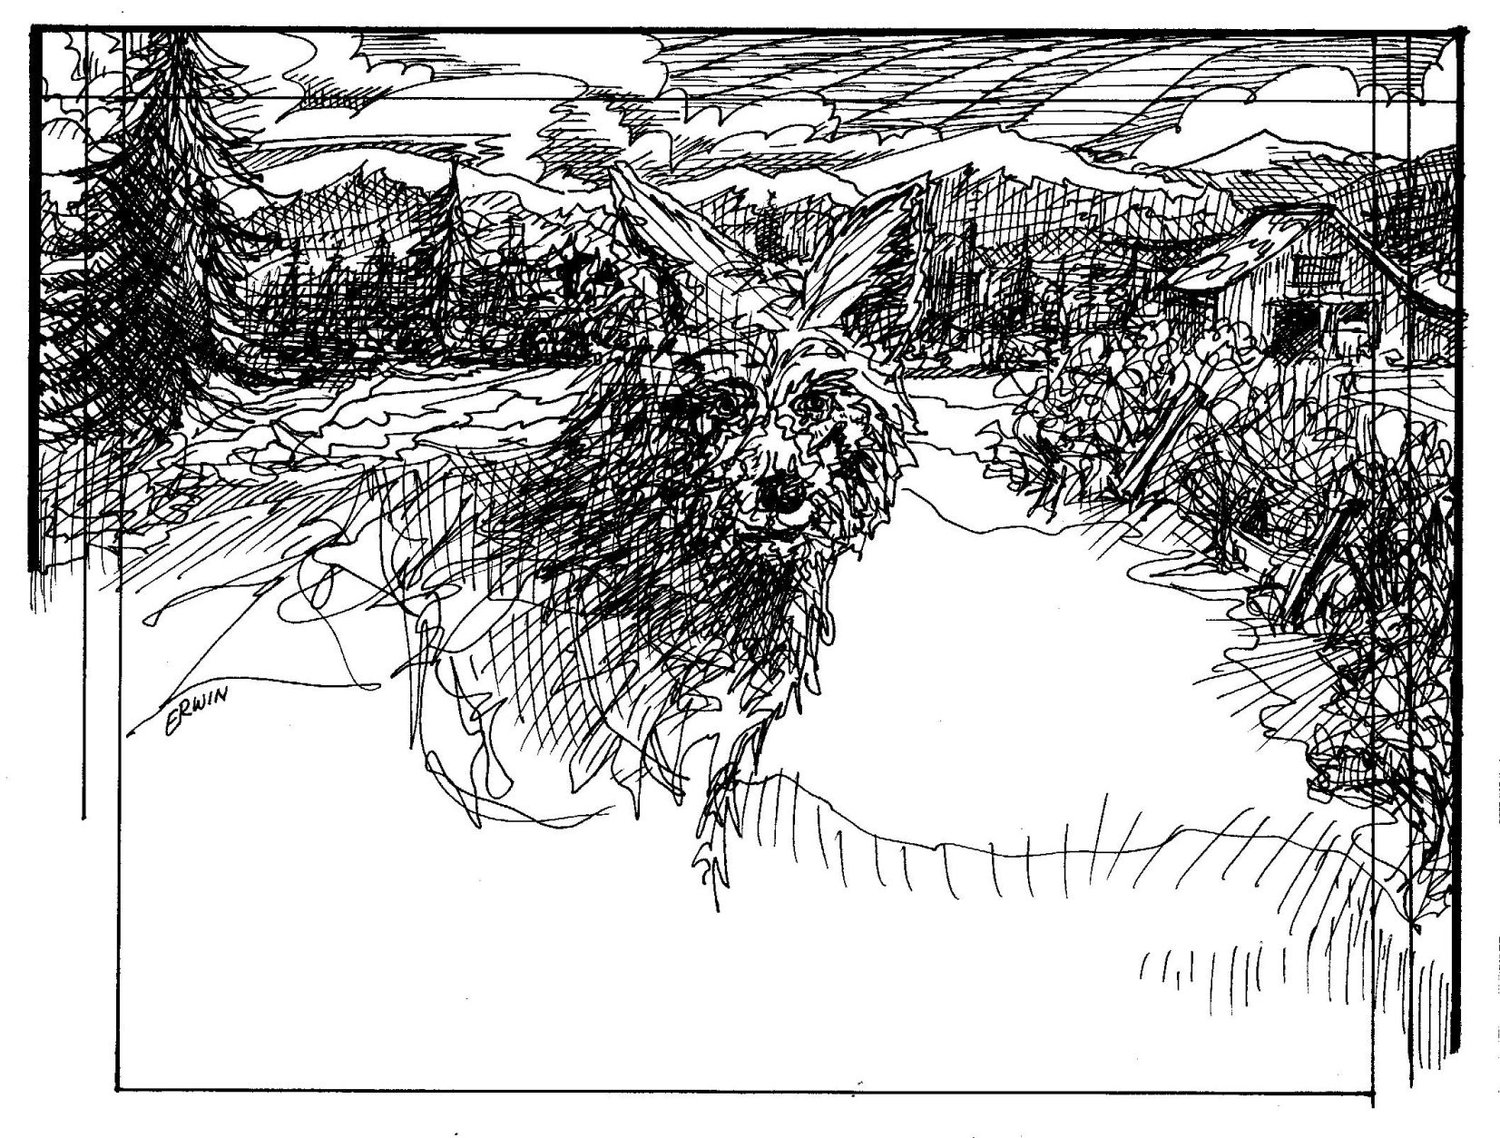 Earthquake Season And Out Of Context Coyote Drawing Port Townsend